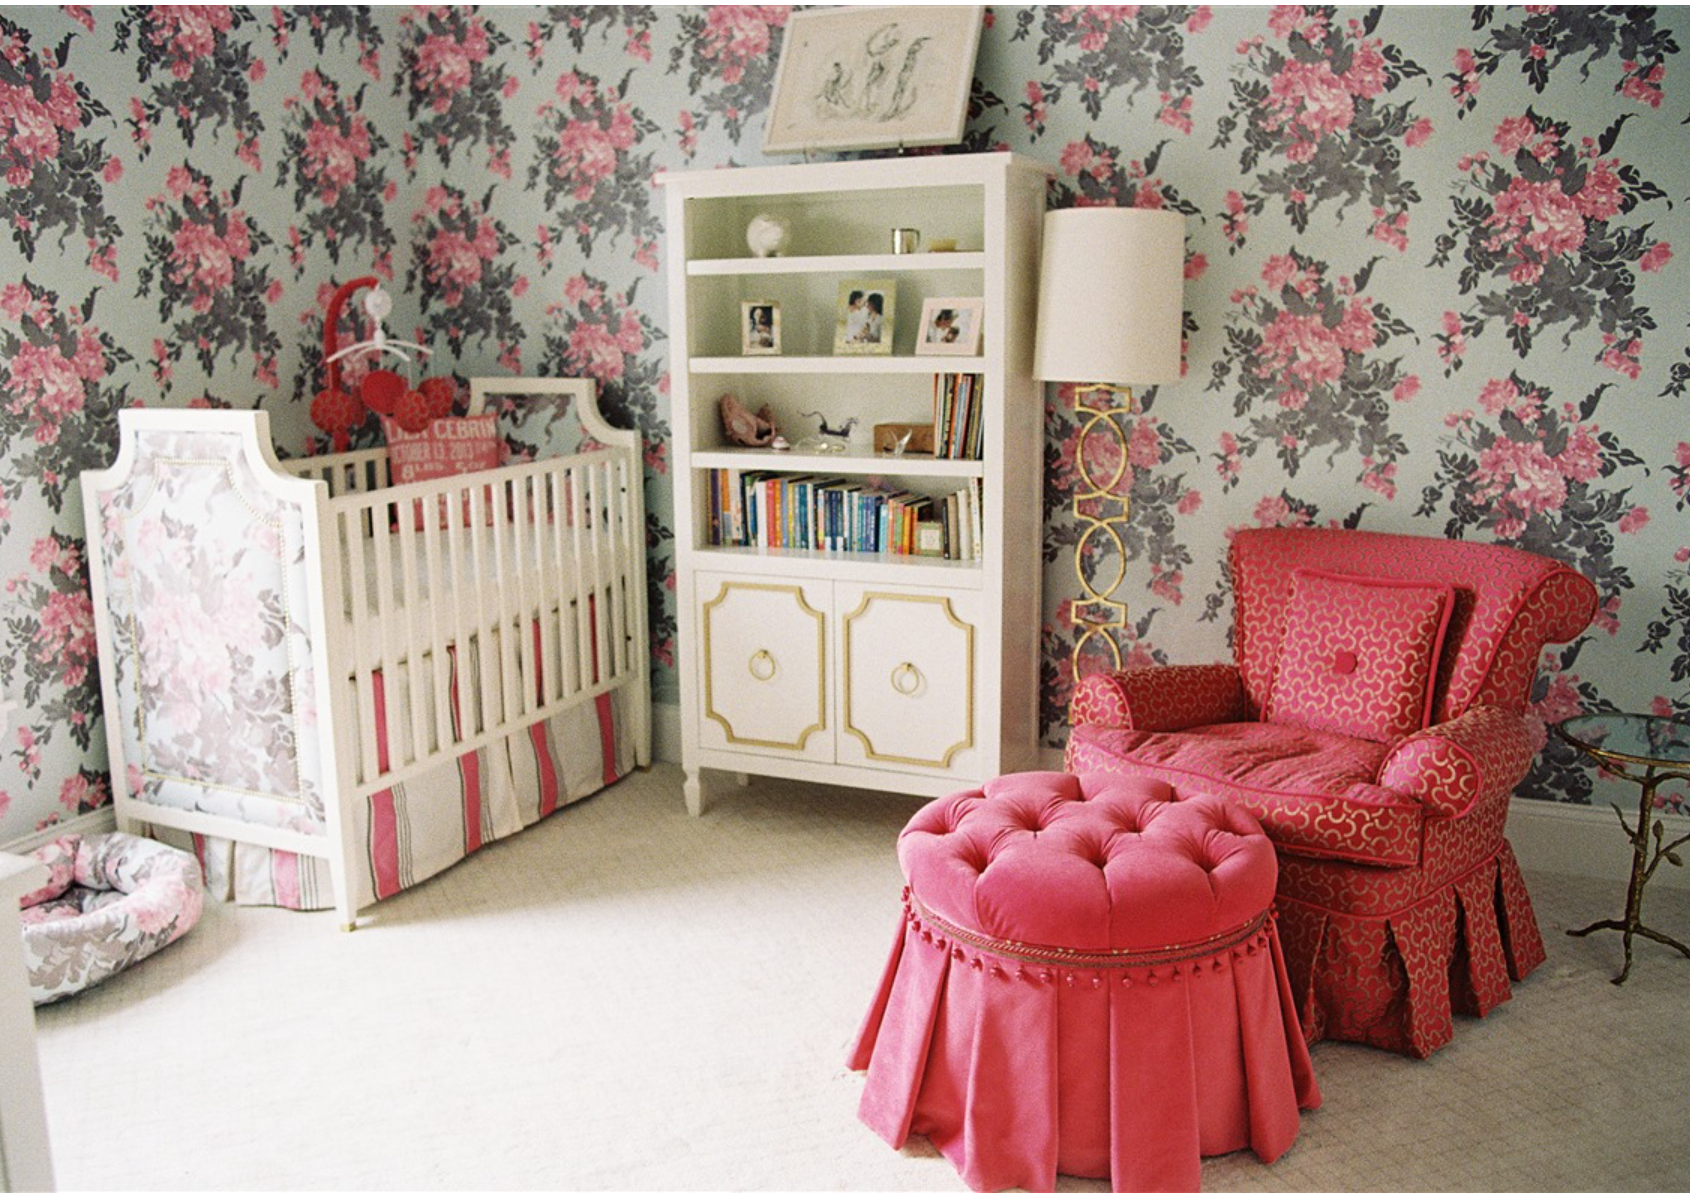 Gail Sedigh - children's luxury nursery decor